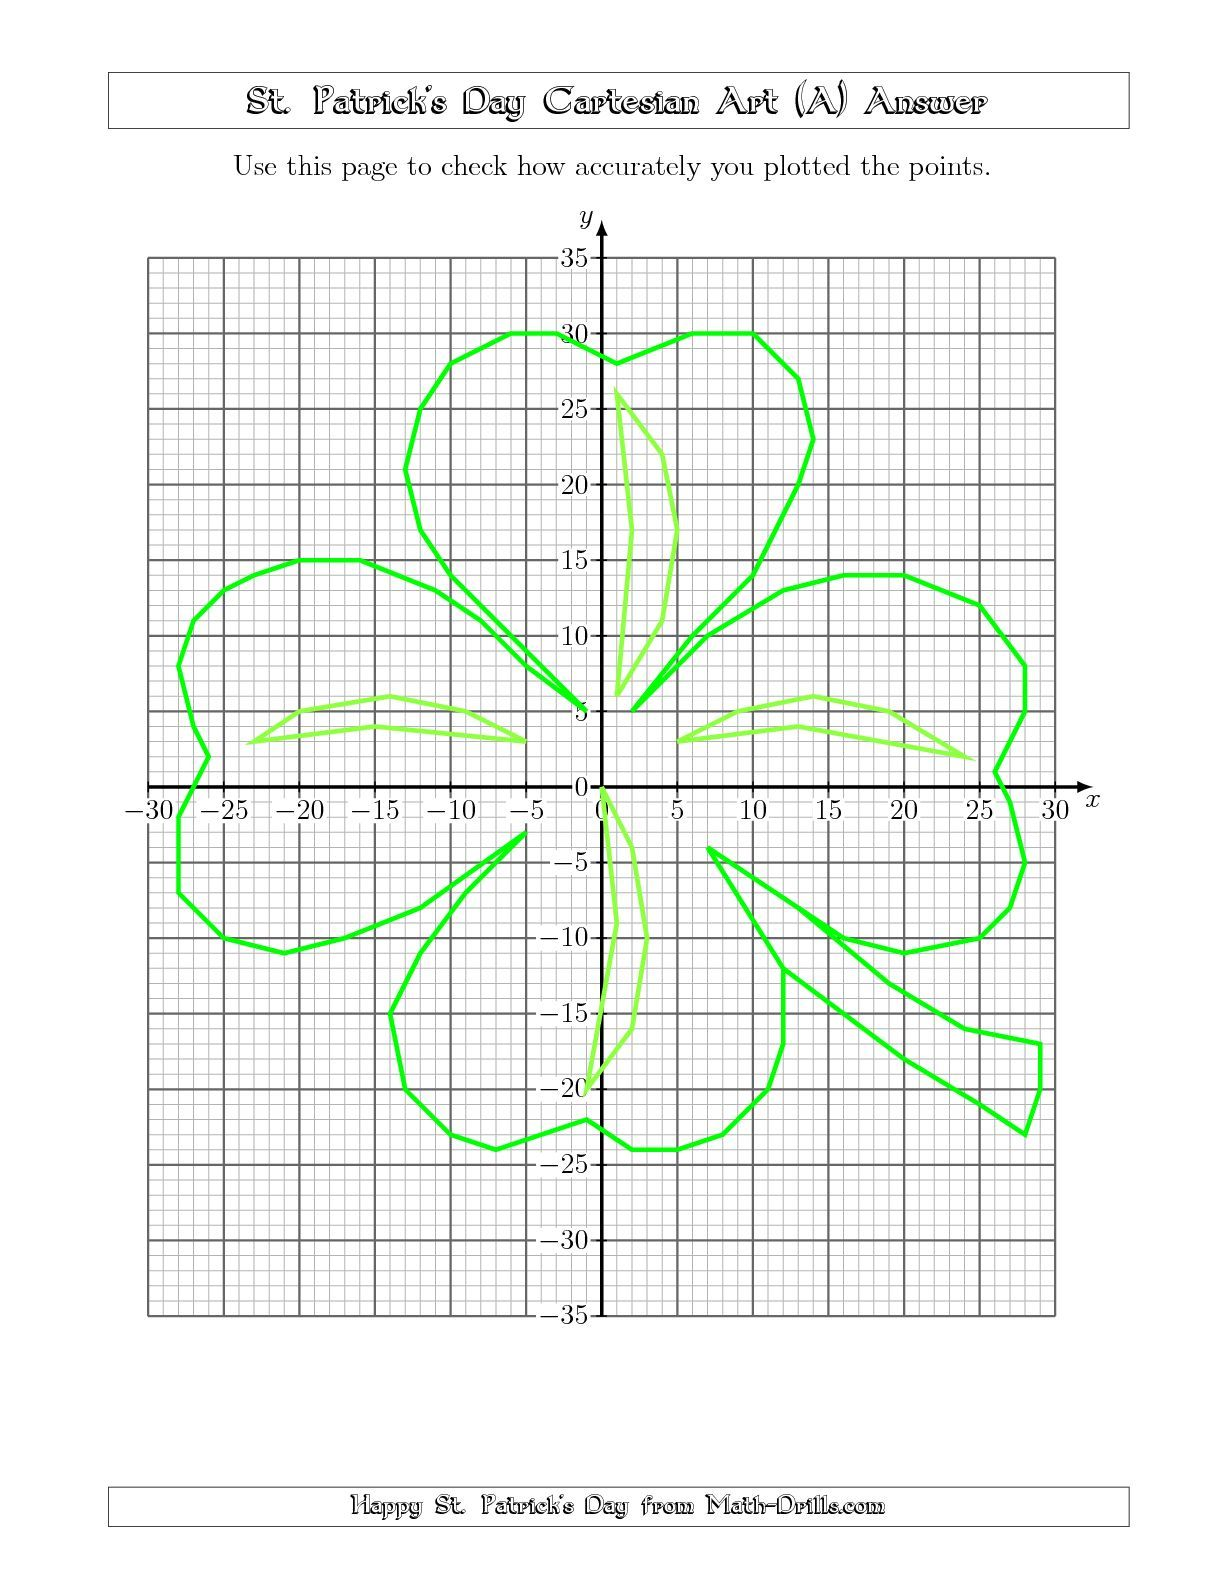 worksheet Coordinate Grid Graphing new st patricks day cartesian art shamrock math worksheet freemath